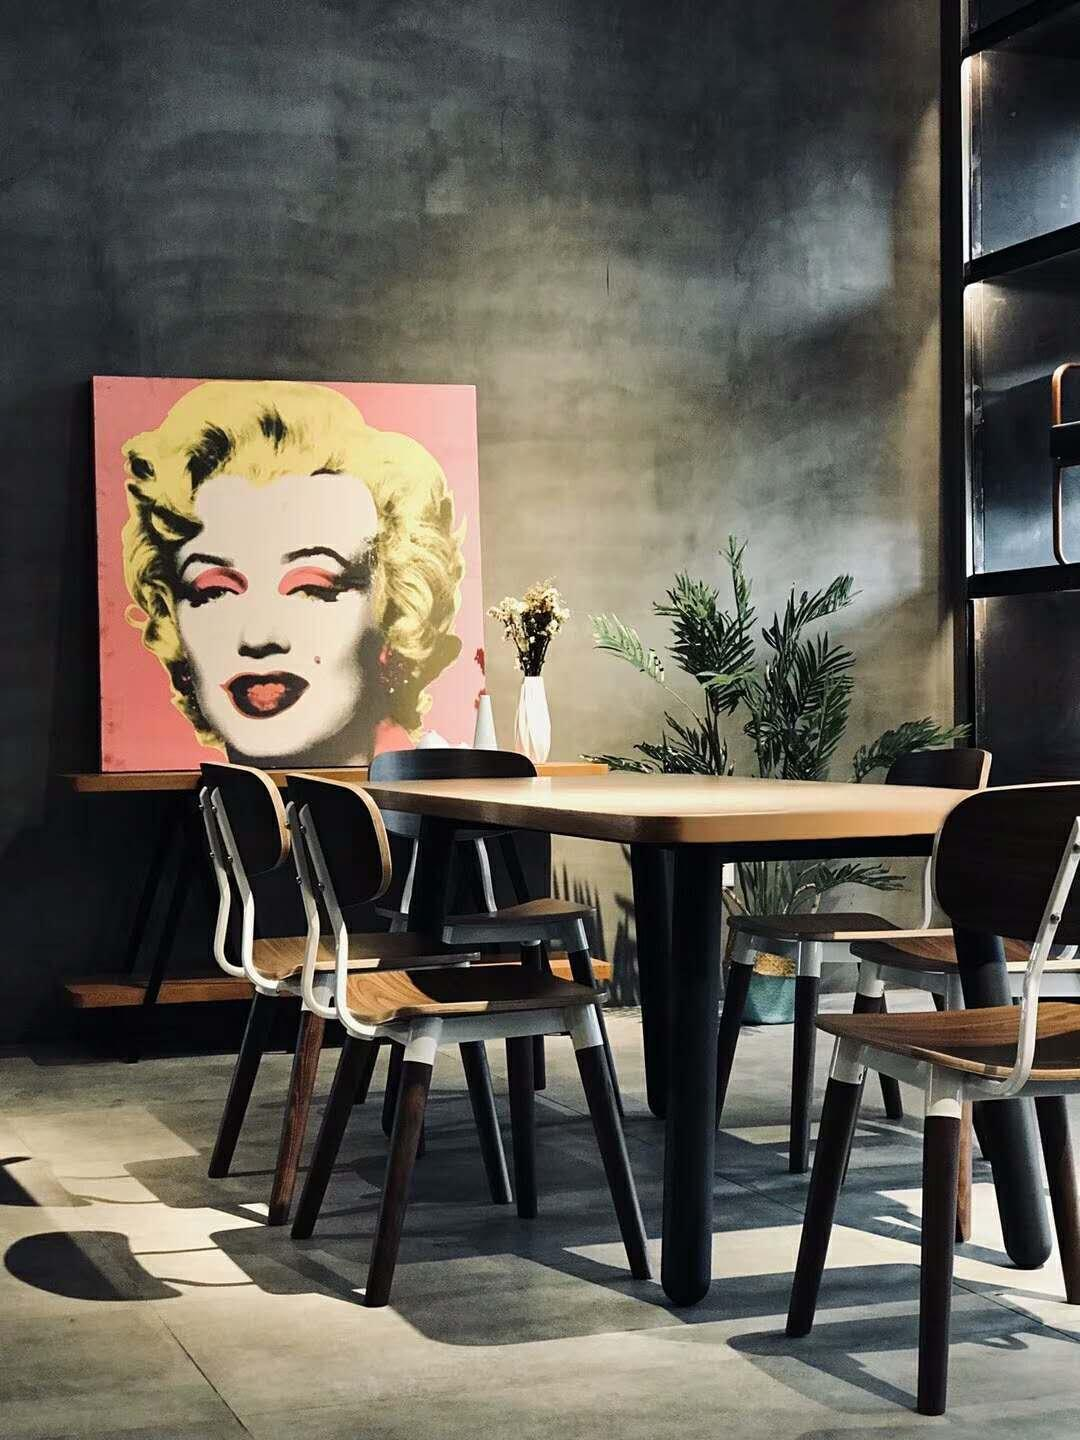 How to choose the best table and chair for dinning room in the house or for your literary coffee shop